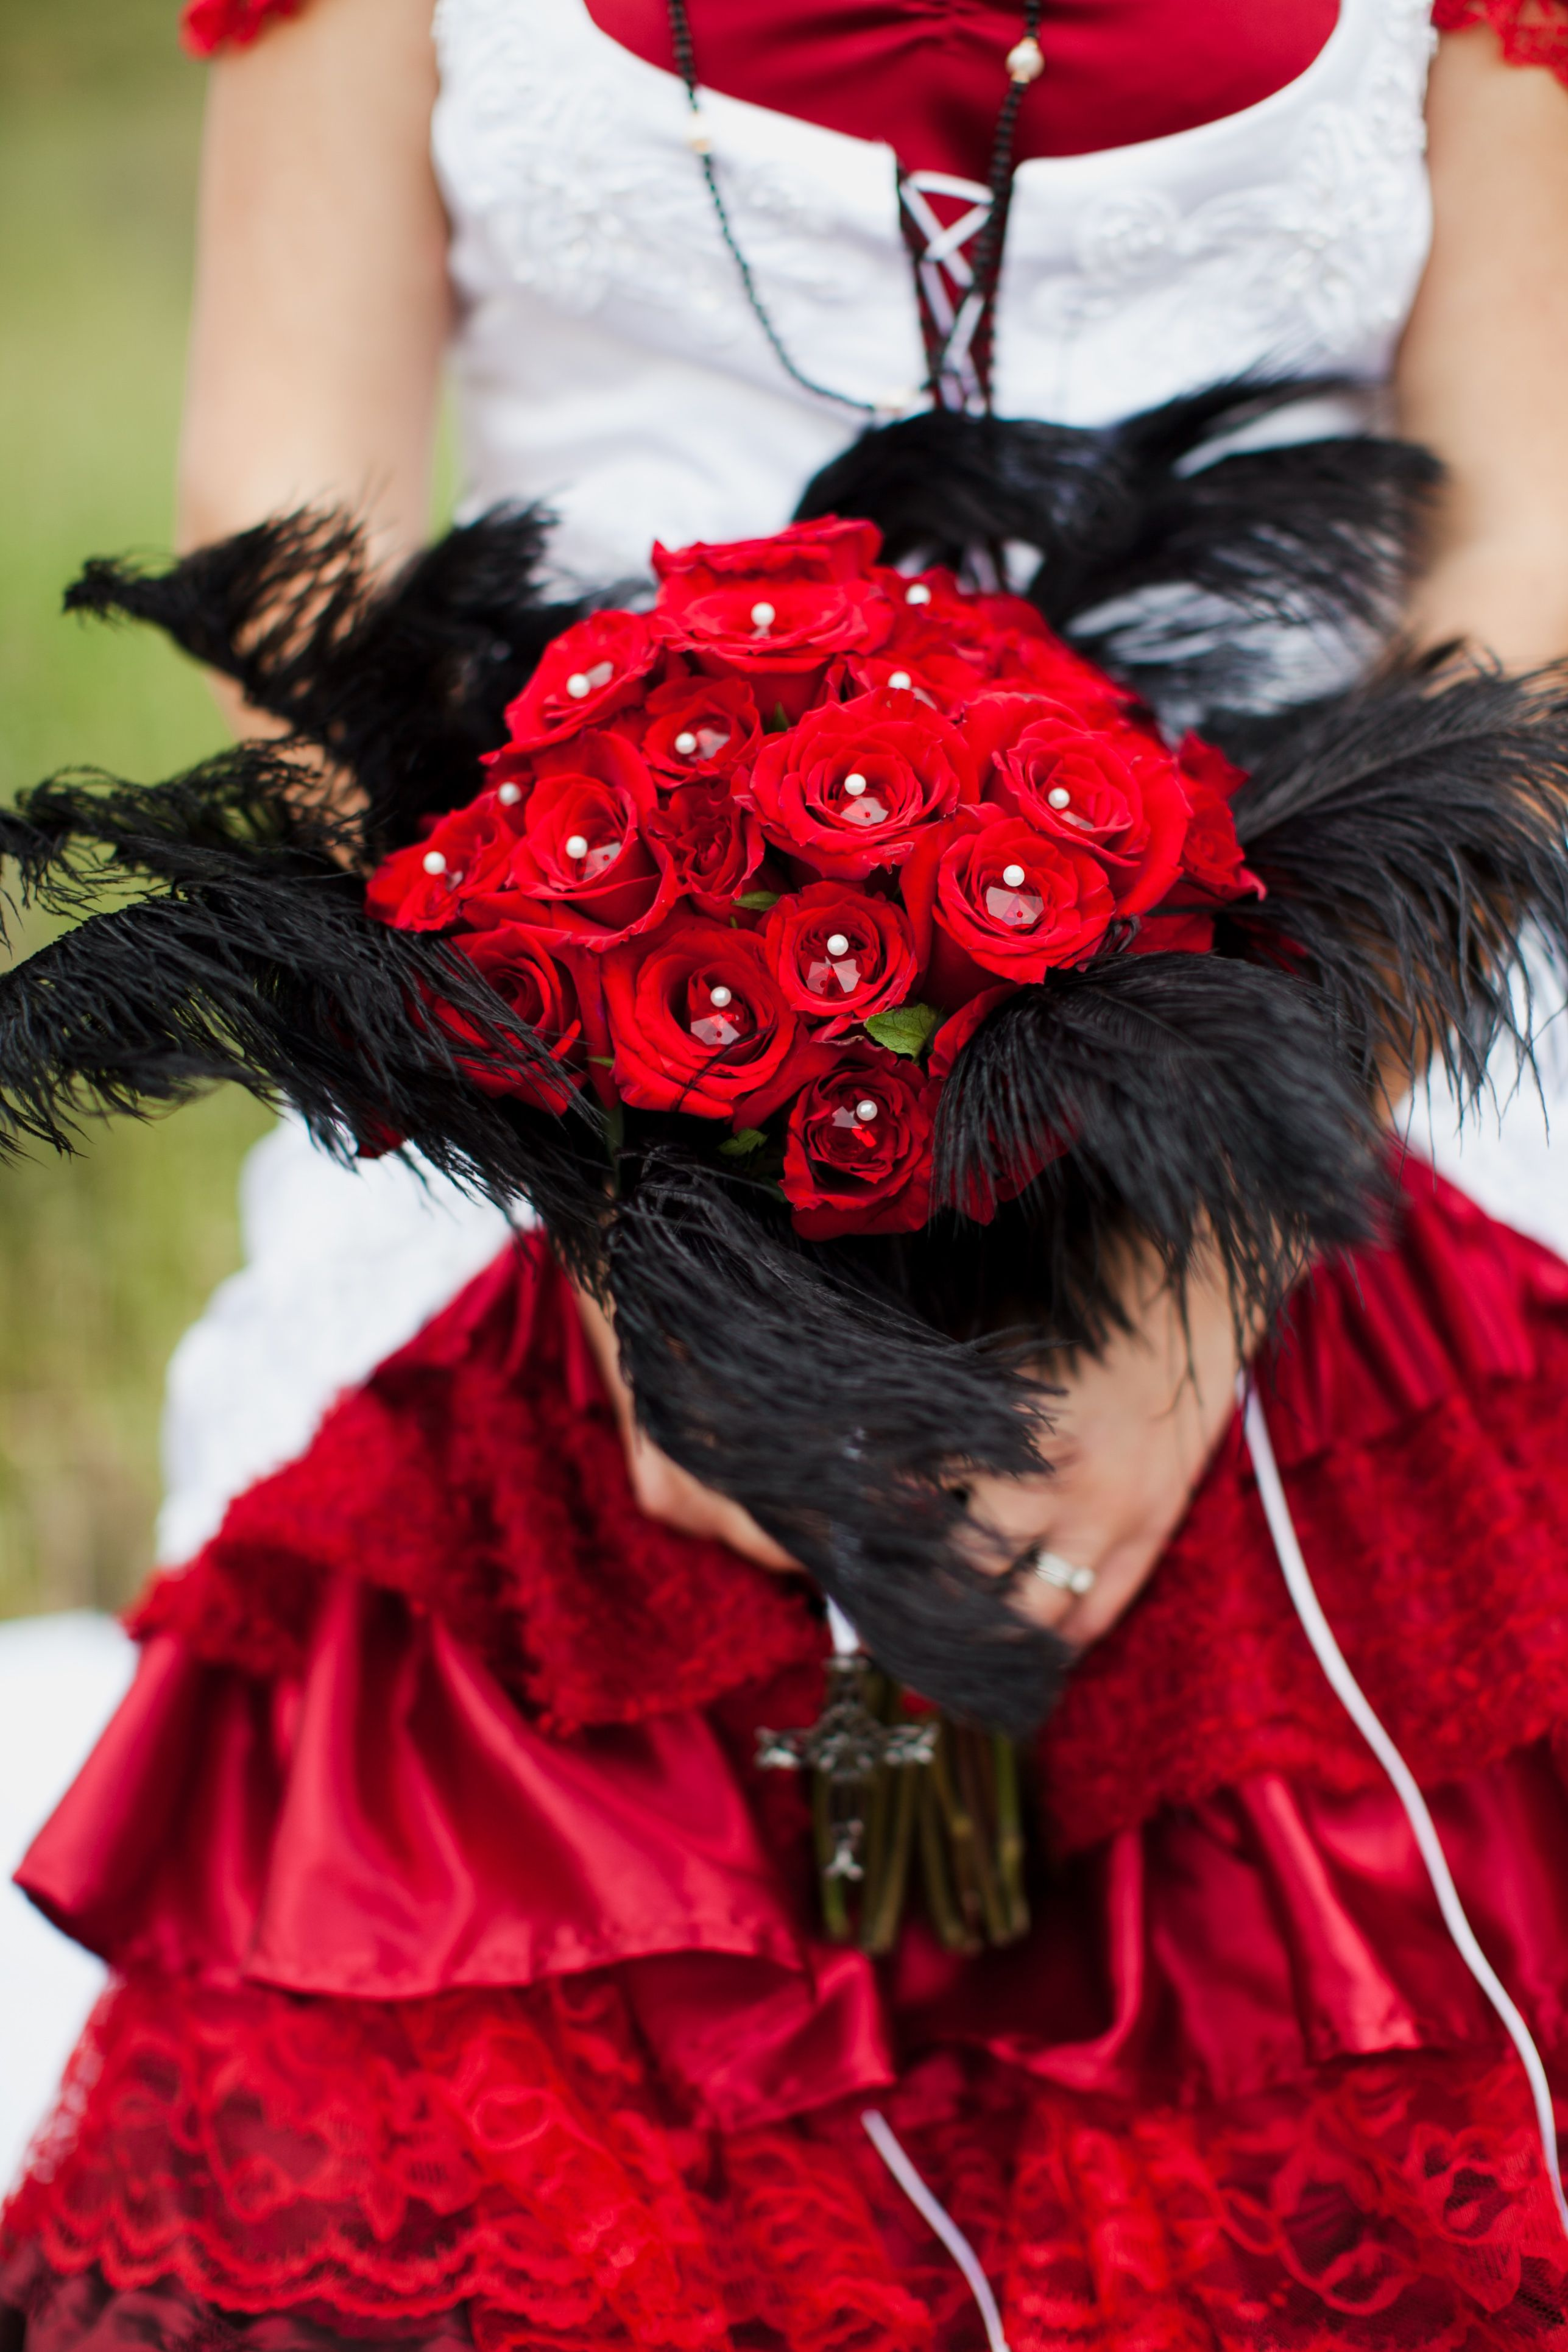 This boquet was made with 50 red roses from Costco, black ostrich ...